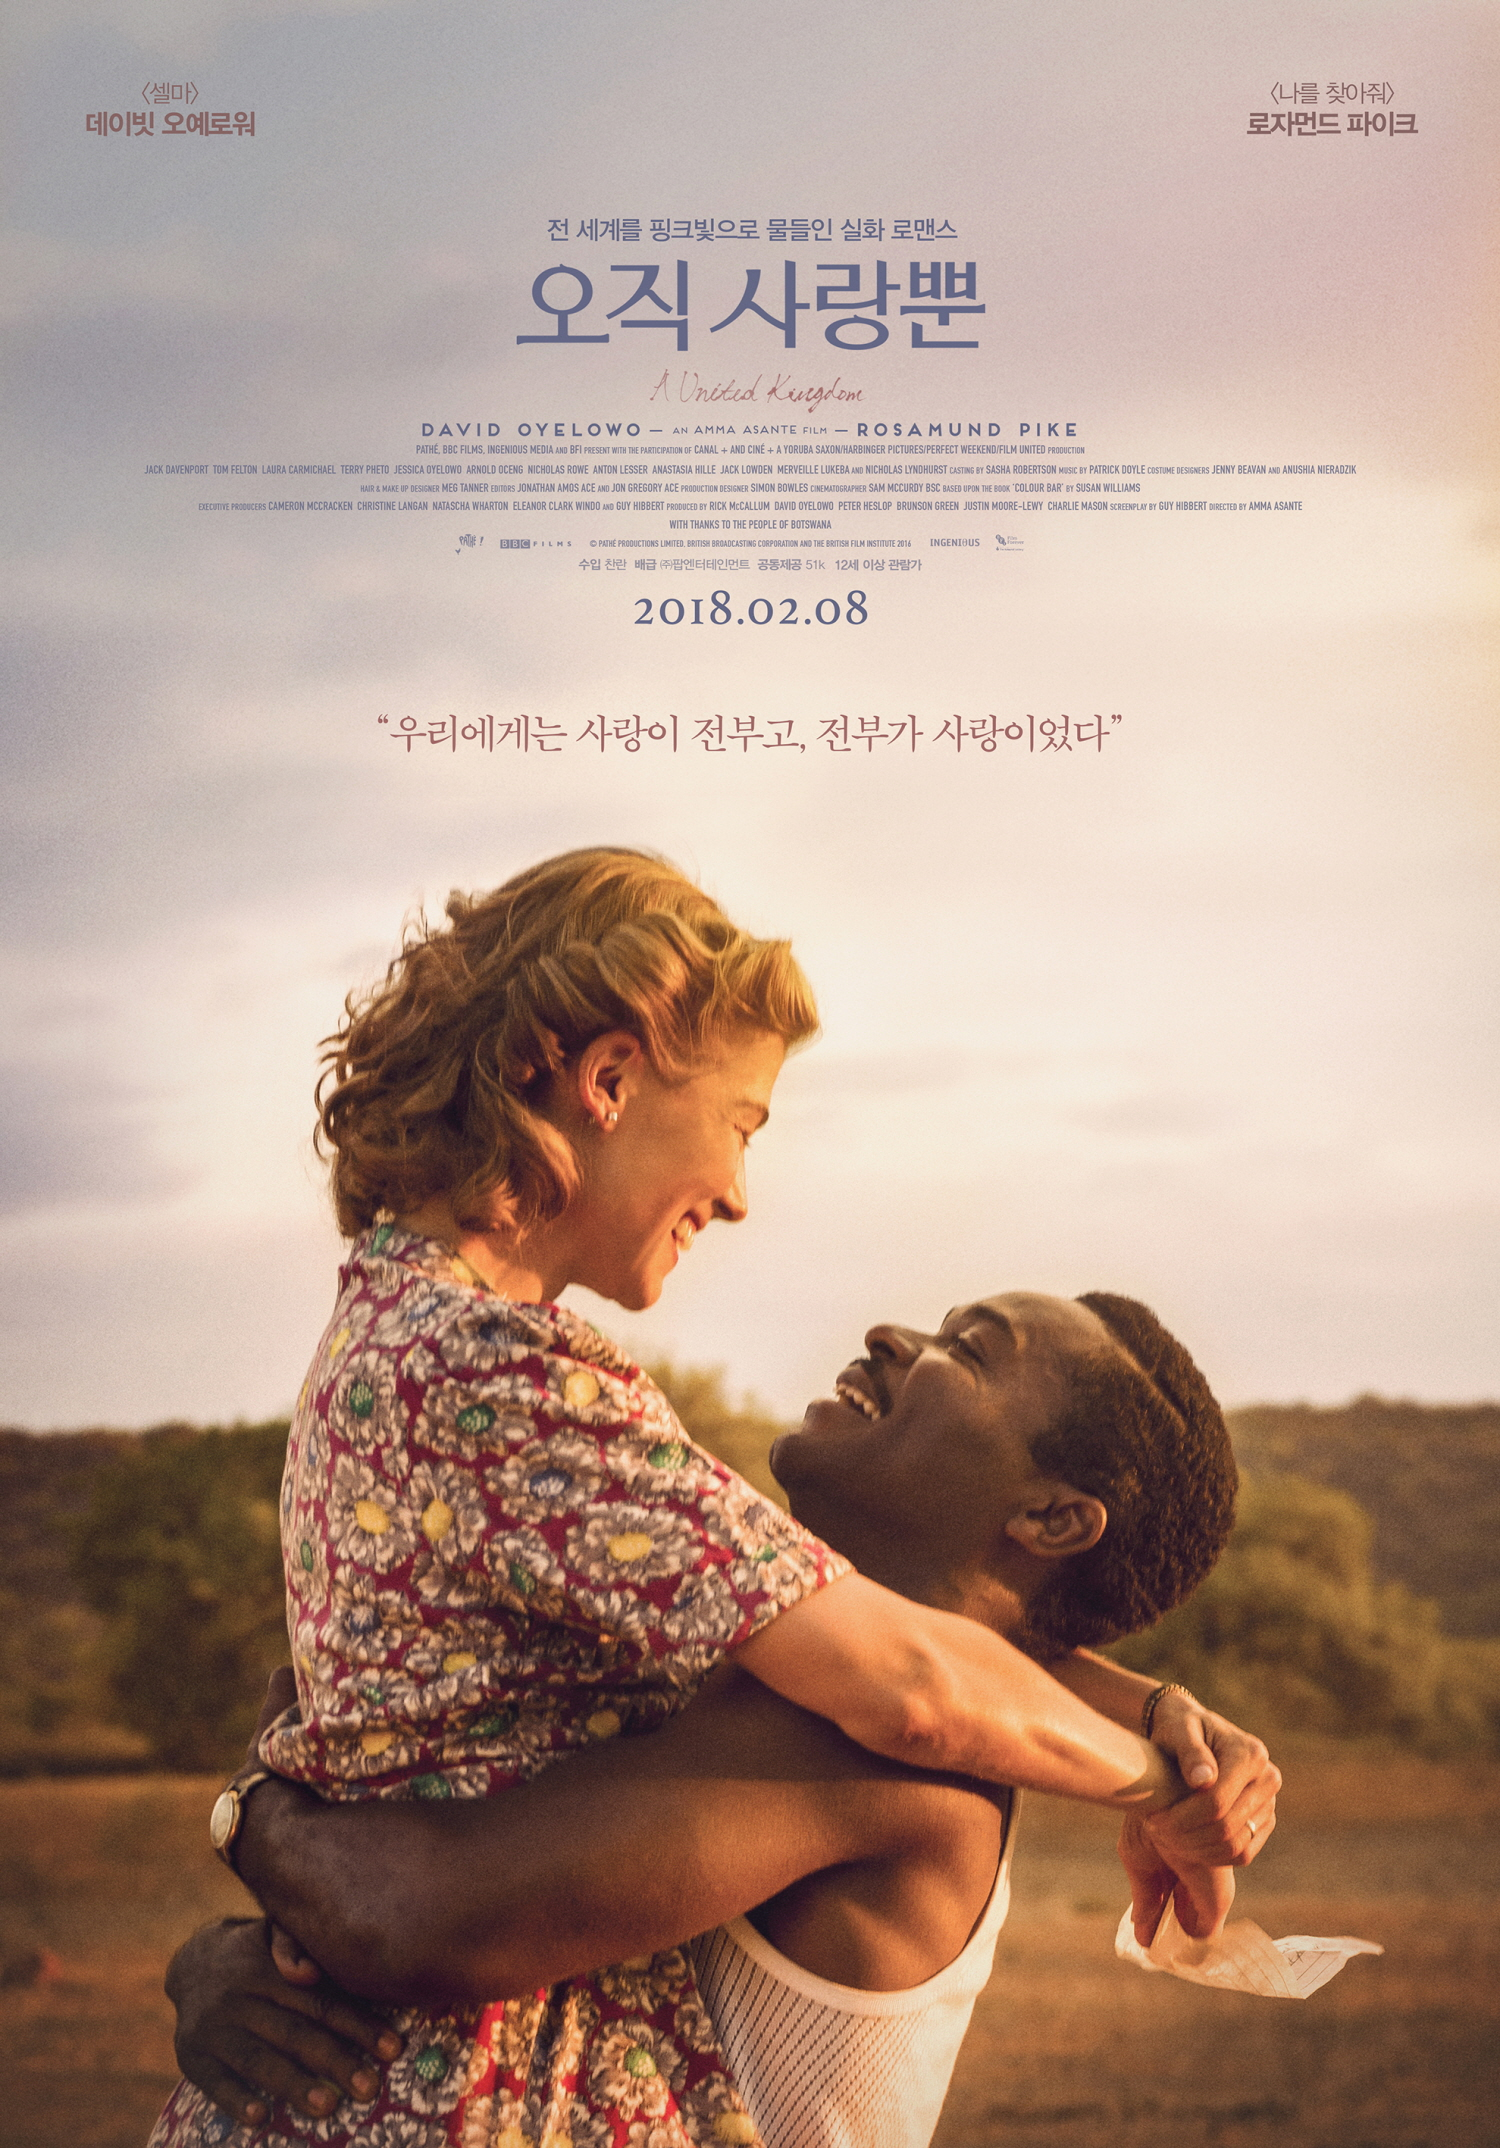 오직 사랑뿐 (A United Kingdom, 2016)